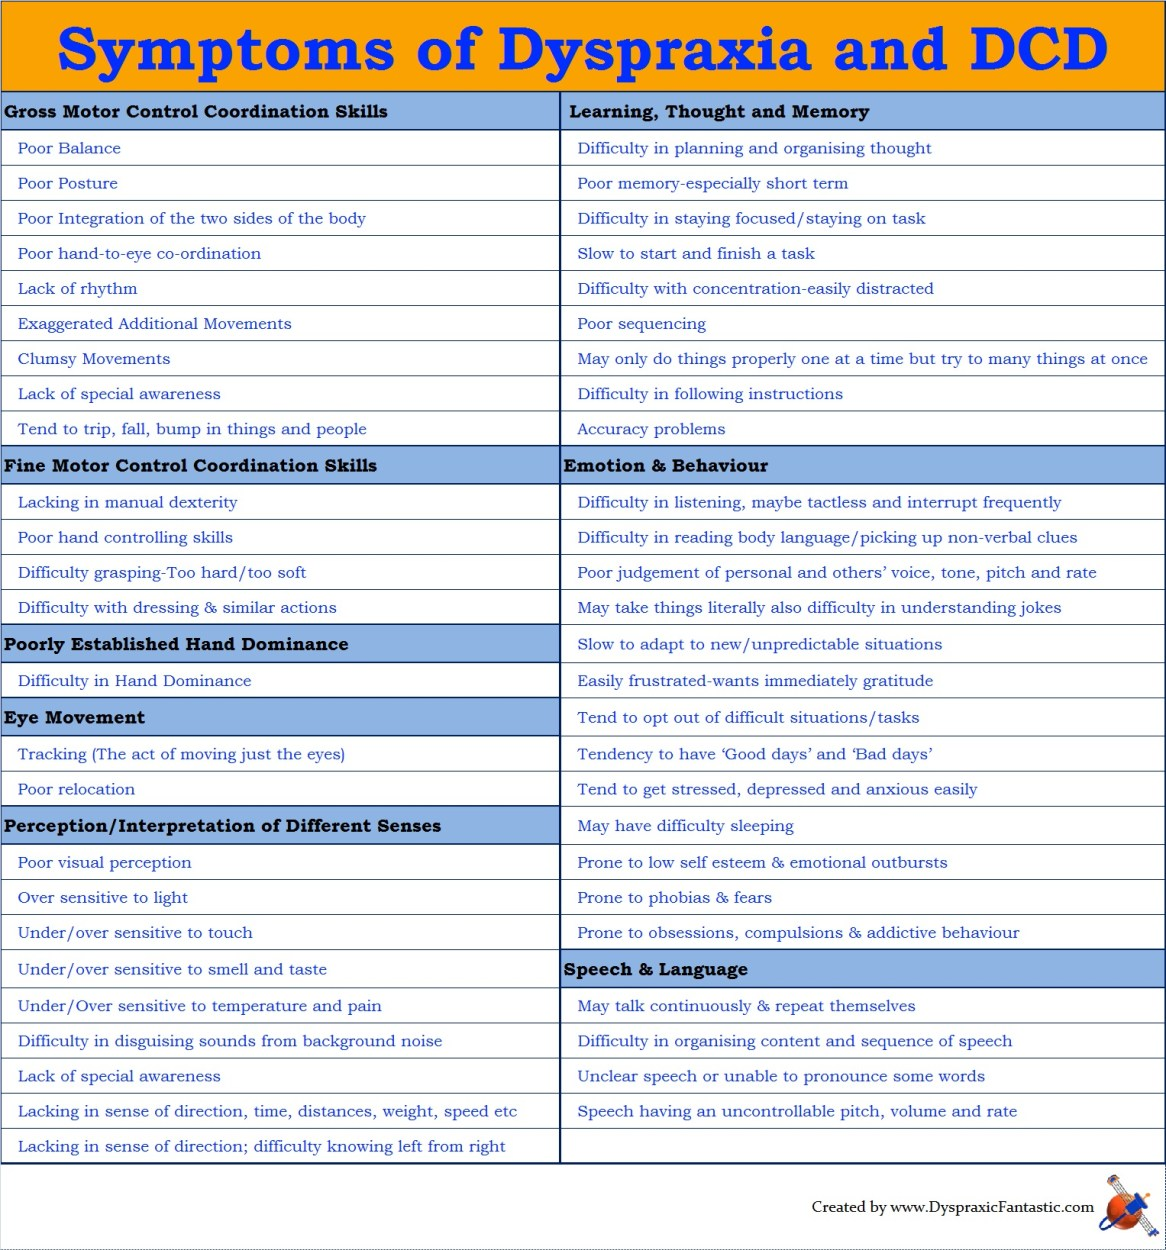 Dyspraxia and DCD Symptons